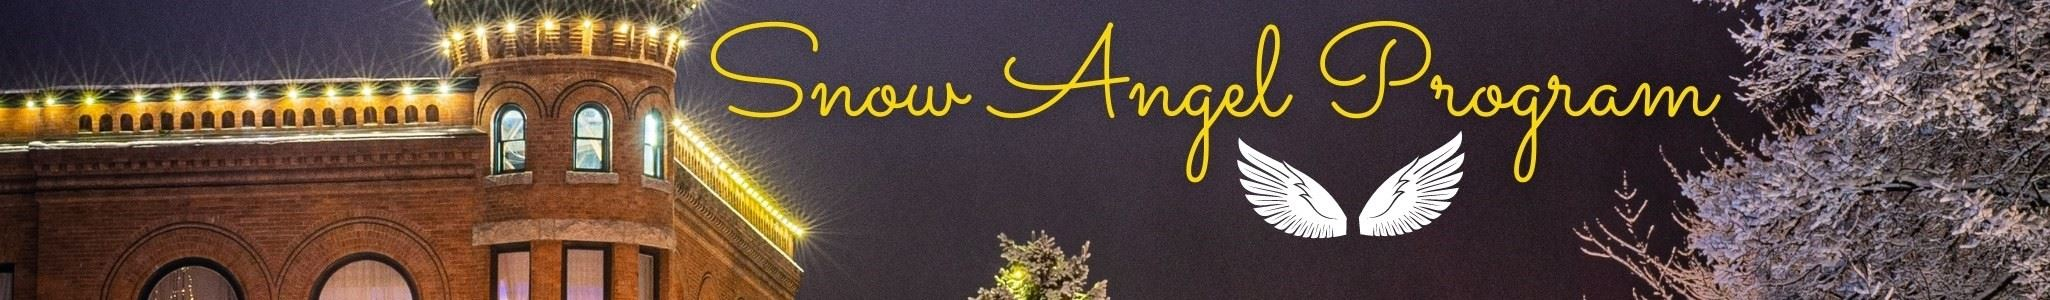 Snow Angel Website Banner